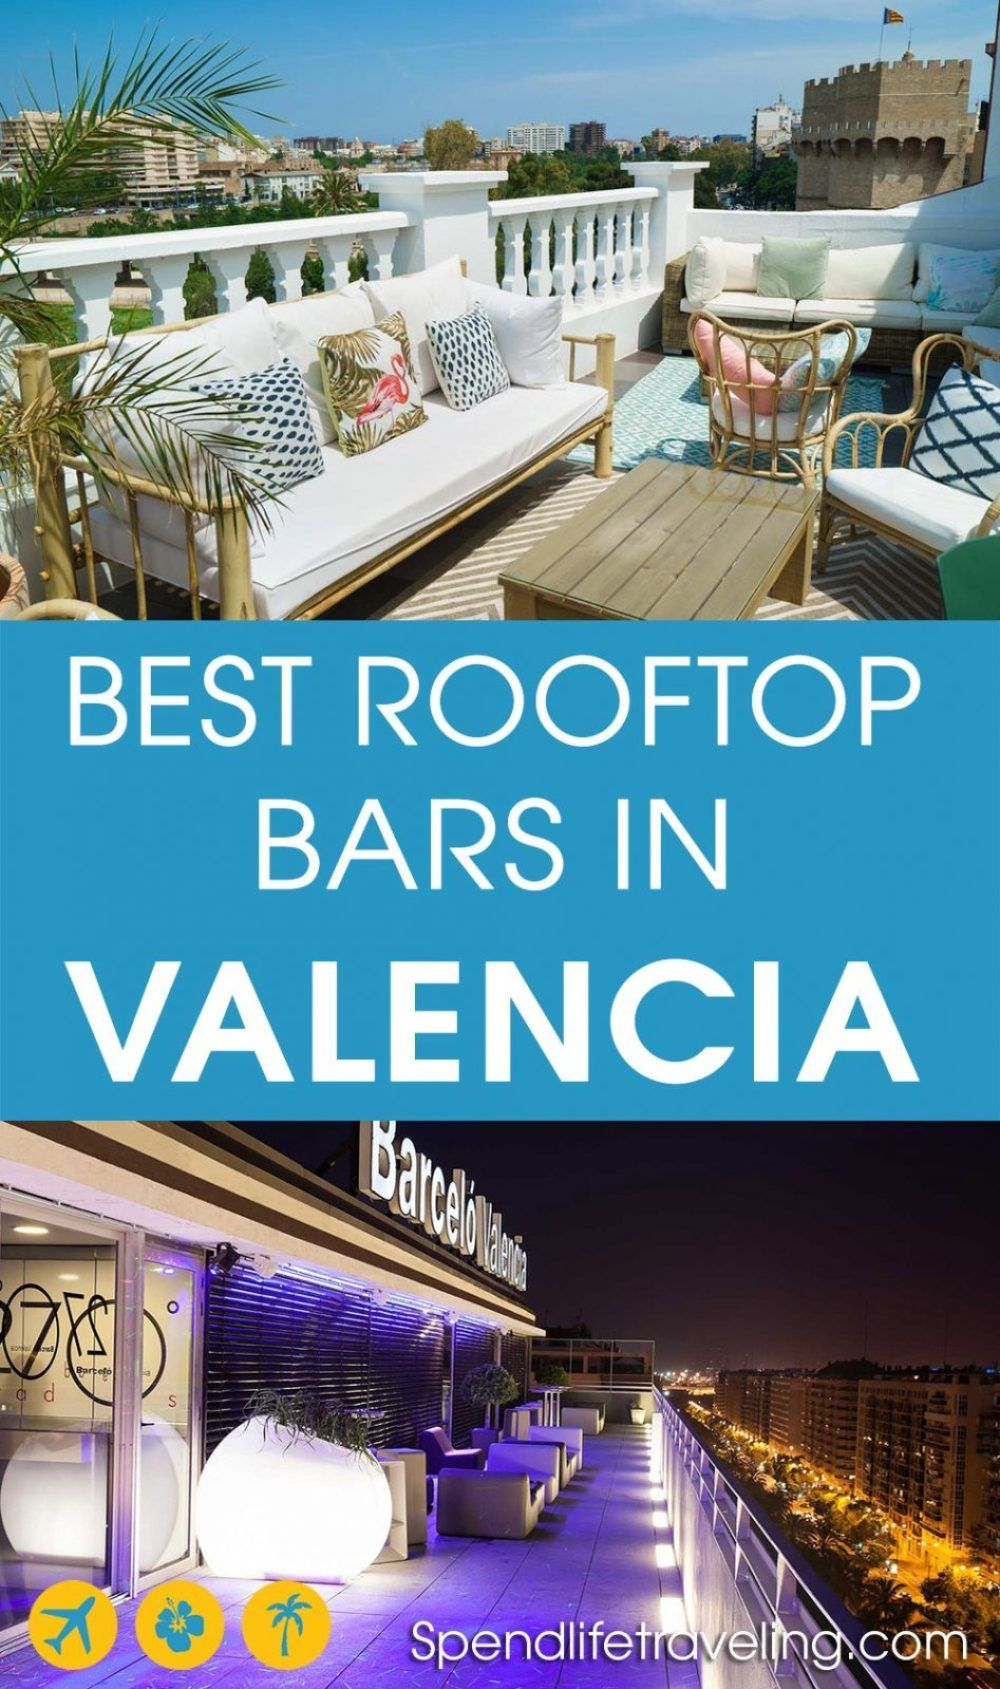 The Best Rooftop Bars In Valencia Spain Best Rooftop Bars Valencia City Valencia